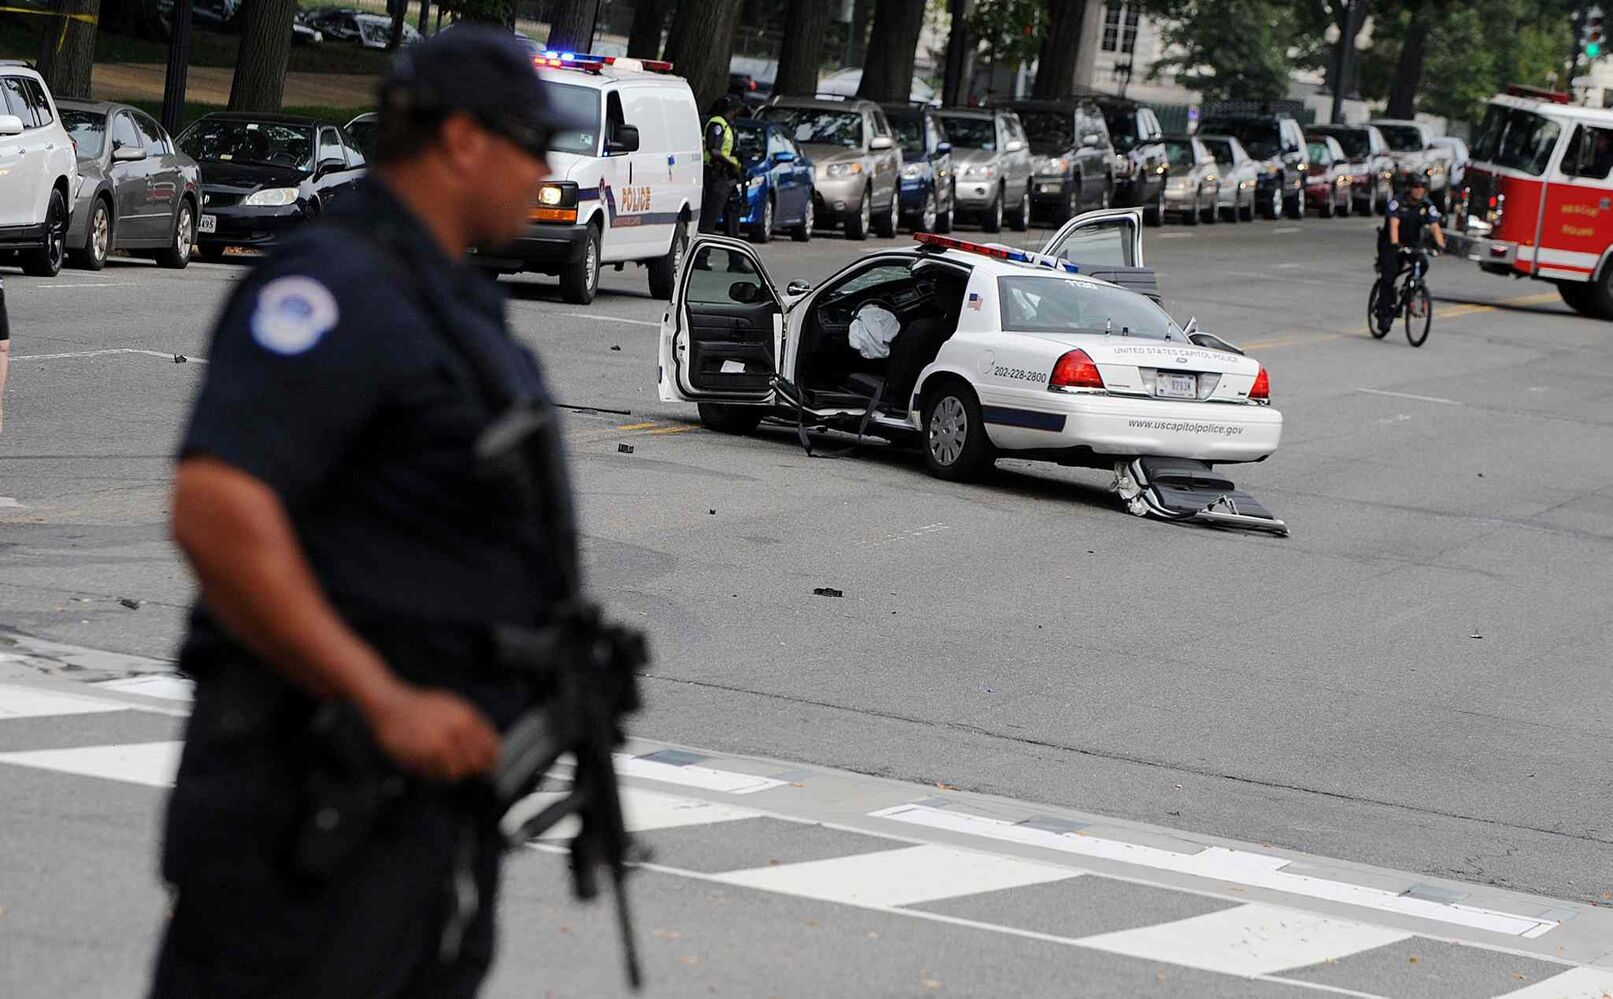 A U.S. Capitol police car sits wrecked in the street as an officer surveys the scene. (Olivier Douliery / MCT)